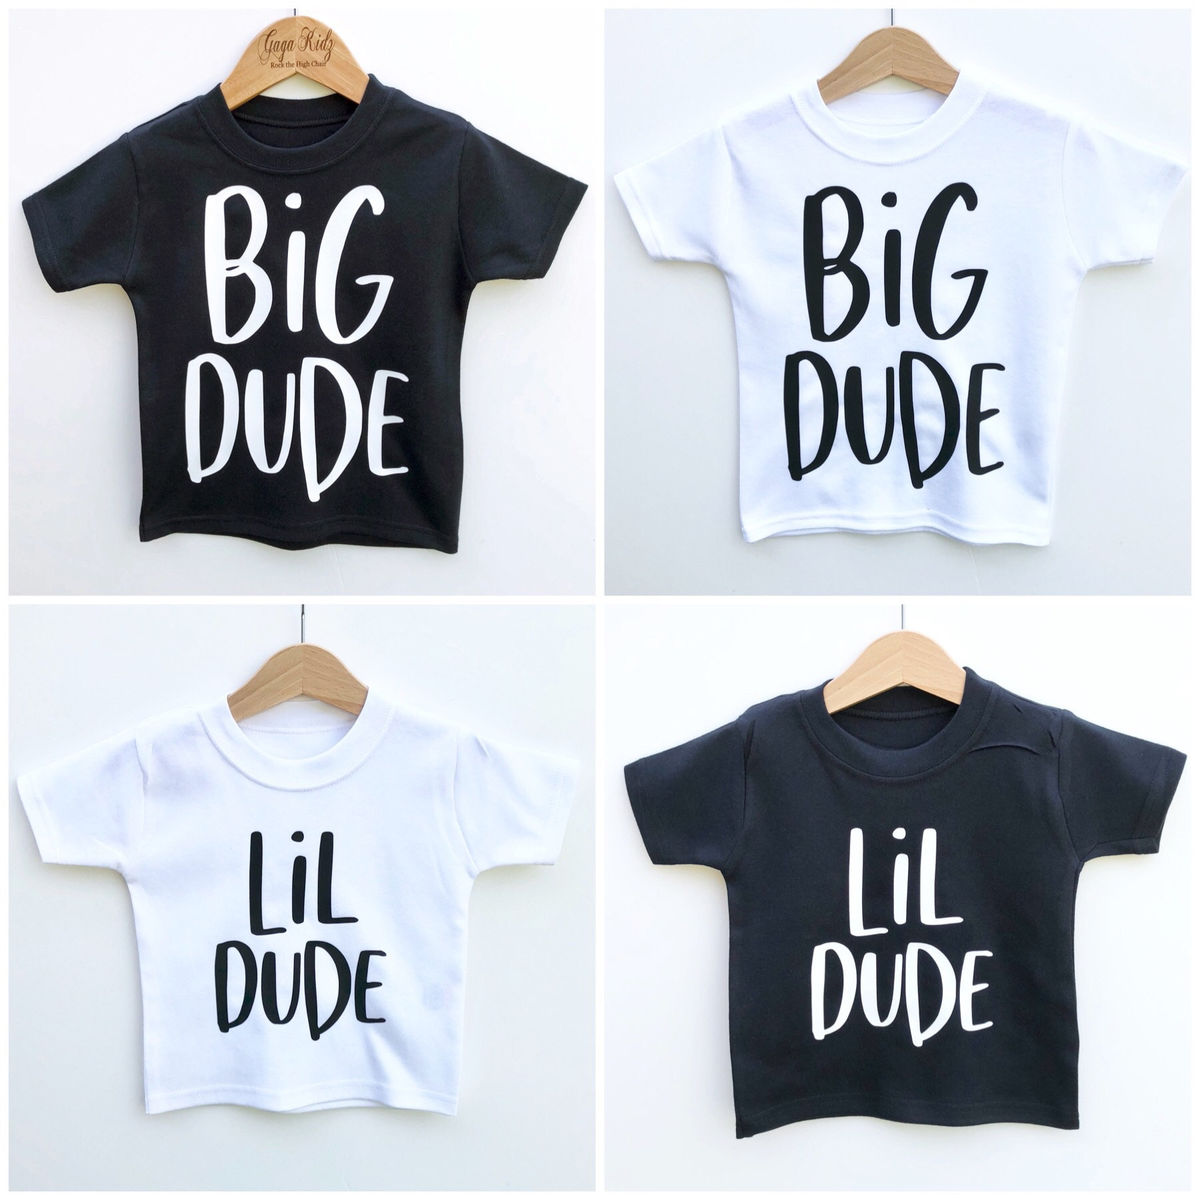 Big Dude Black & White T-Shirt (various sizes) - product images  of